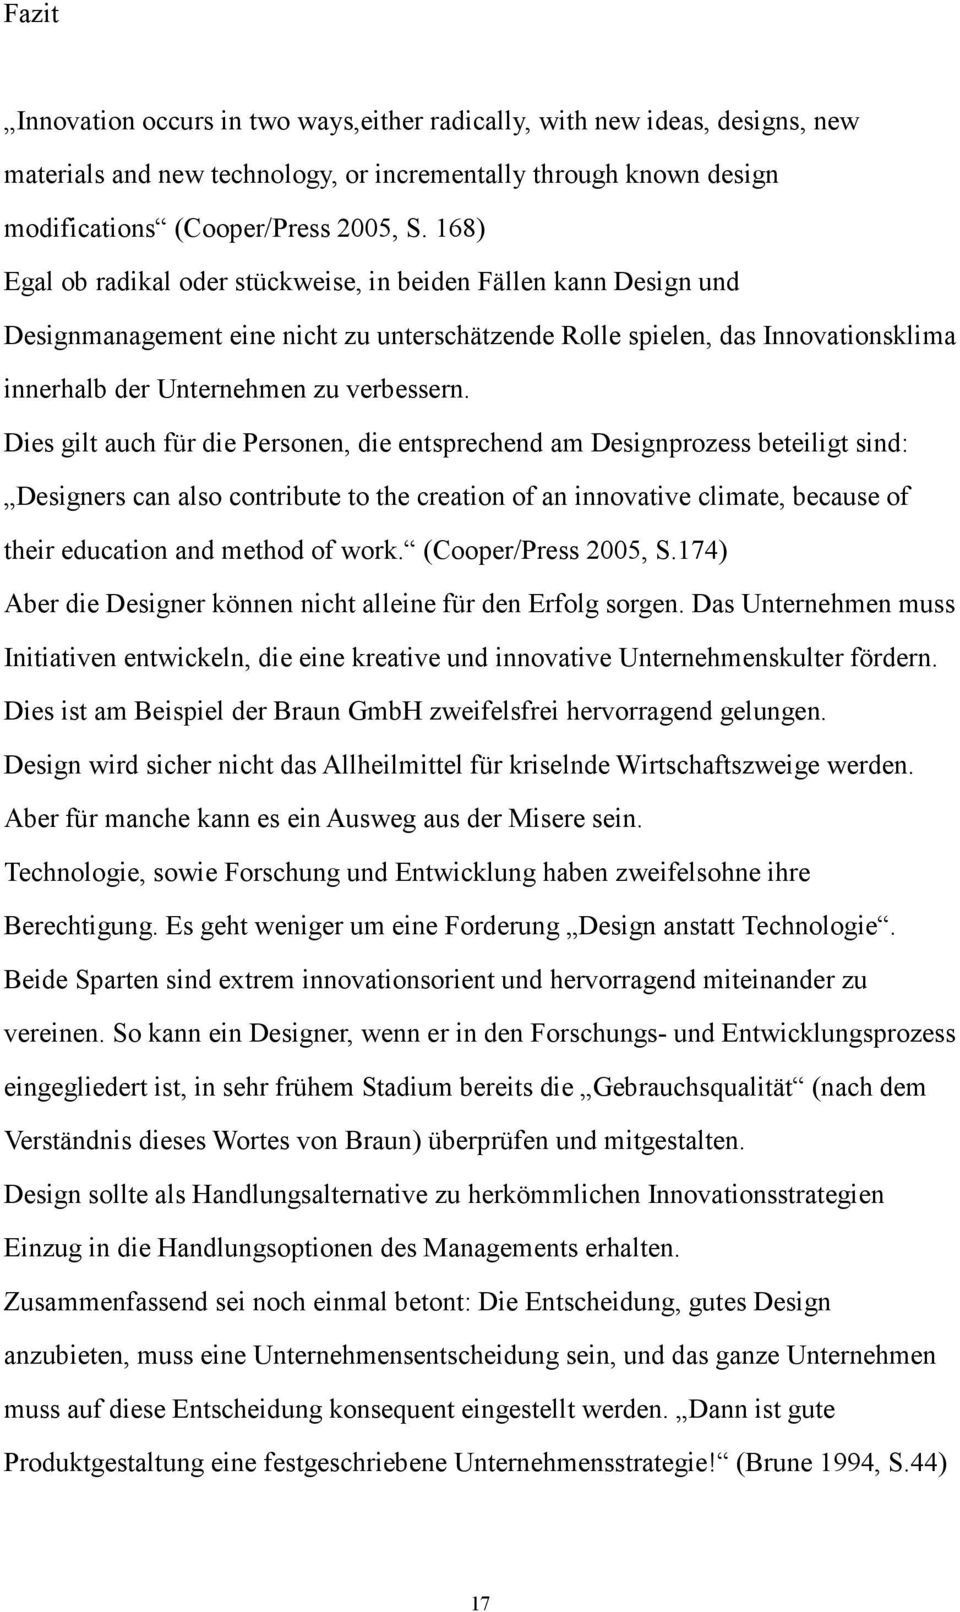 Dies gilt auch für die Personen, die entsprechend am Designprozess beteiligt sind: Designers can also contribute to the creation of an innovative climate, because of their education and method of